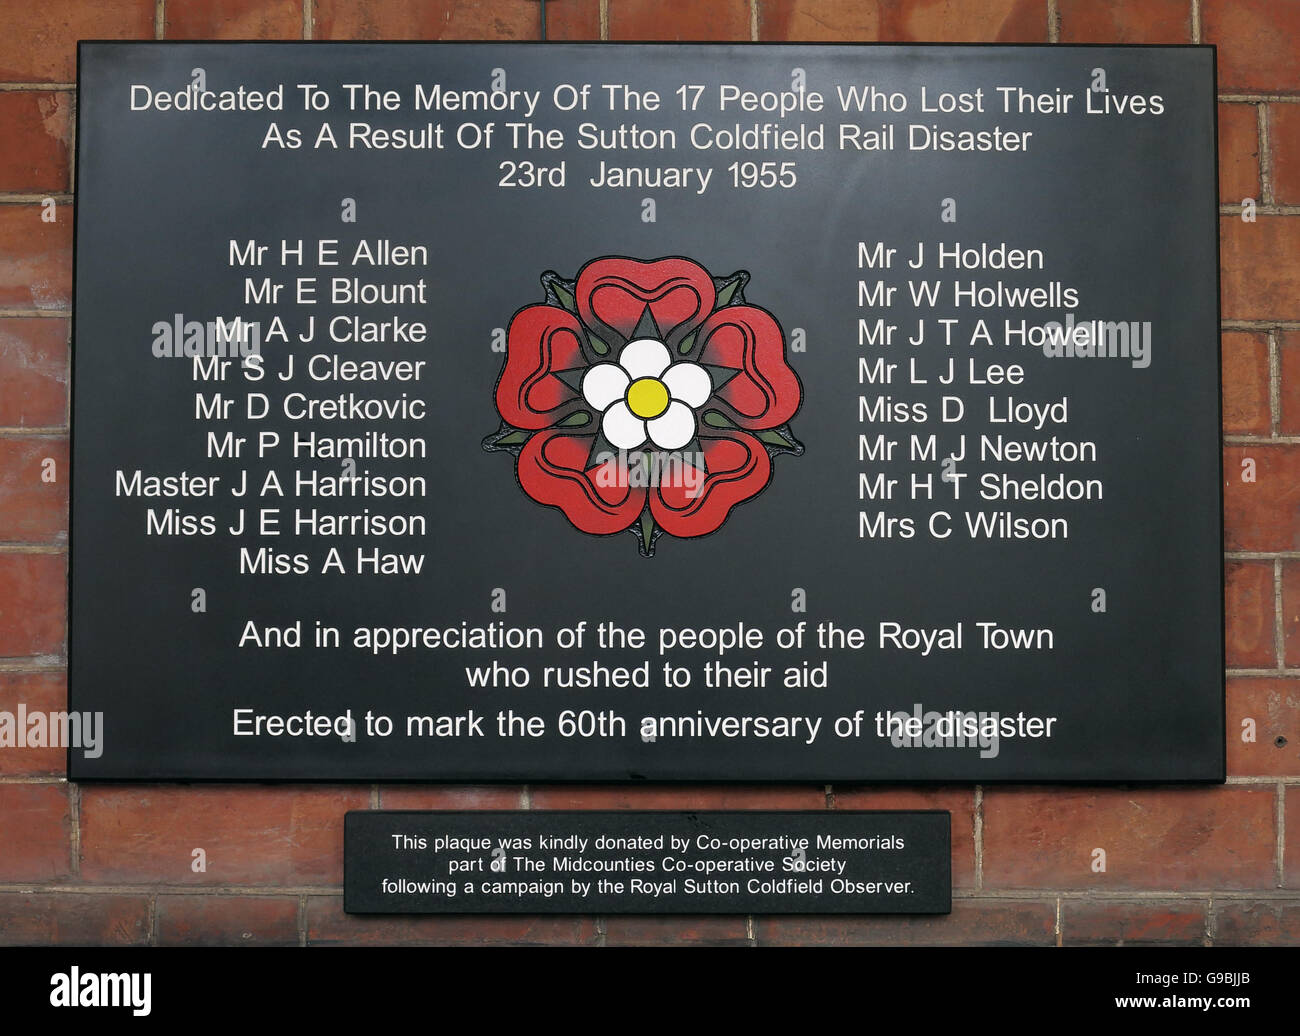 Sutton Coldfield Rail Disaster memorial,West Midlands,England,UK 23/01/1955 Stock Photo